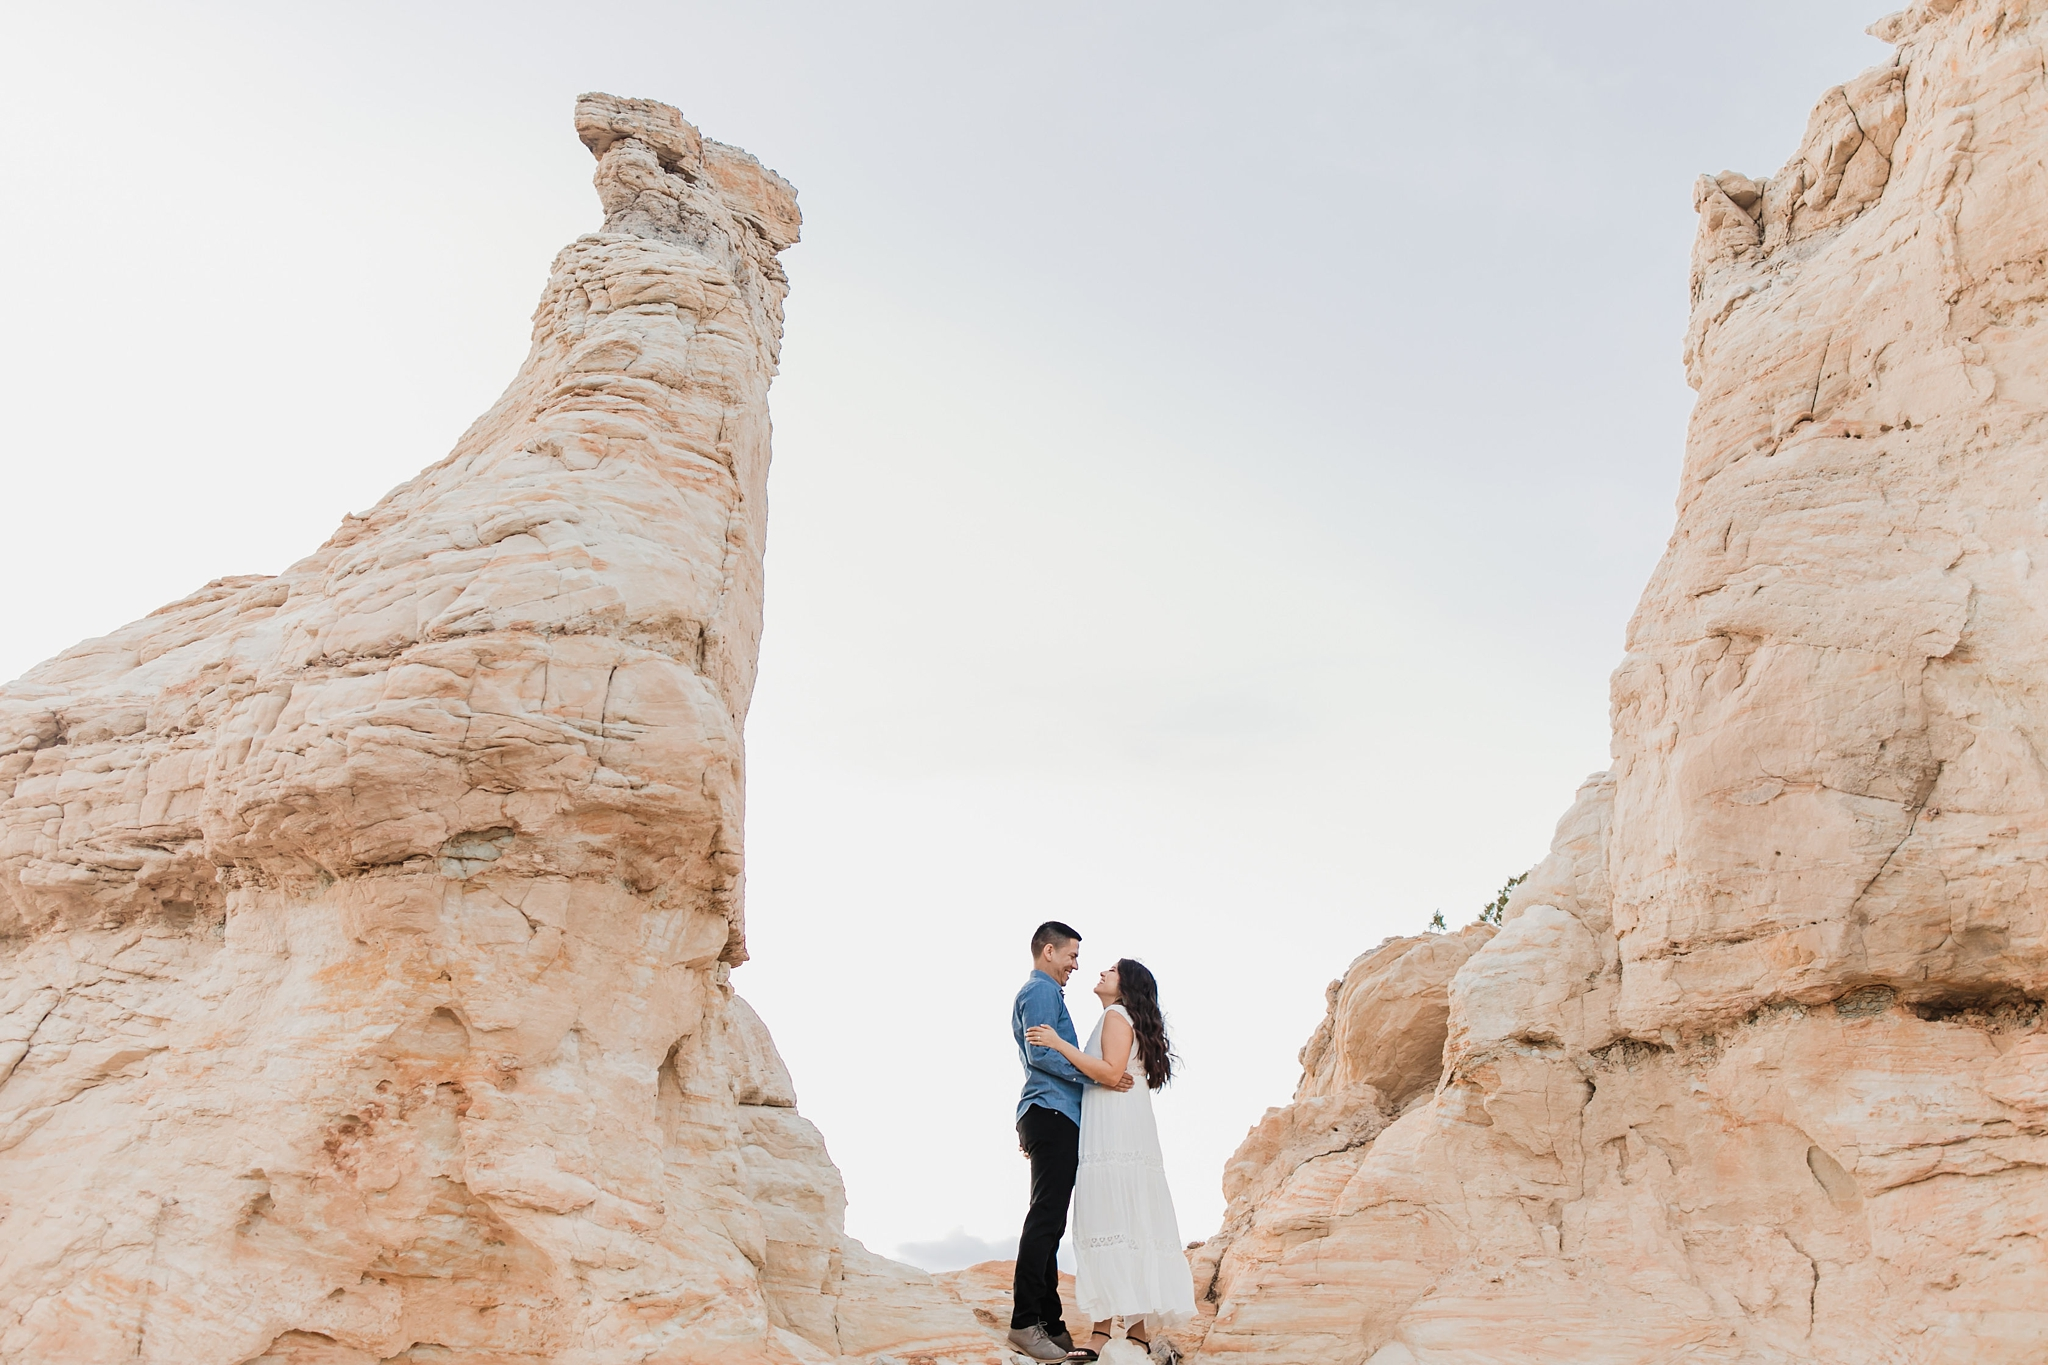 Alicia+lucia+photography+-+albuquerque+wedding+photographer+-+santa+fe+wedding+photography+-+new+mexico+wedding+photographer+-+new+mexico+wedding+-+new+mexico+engagement+-+white+mesa+engagement+-+desert+engagement_0001.jpg